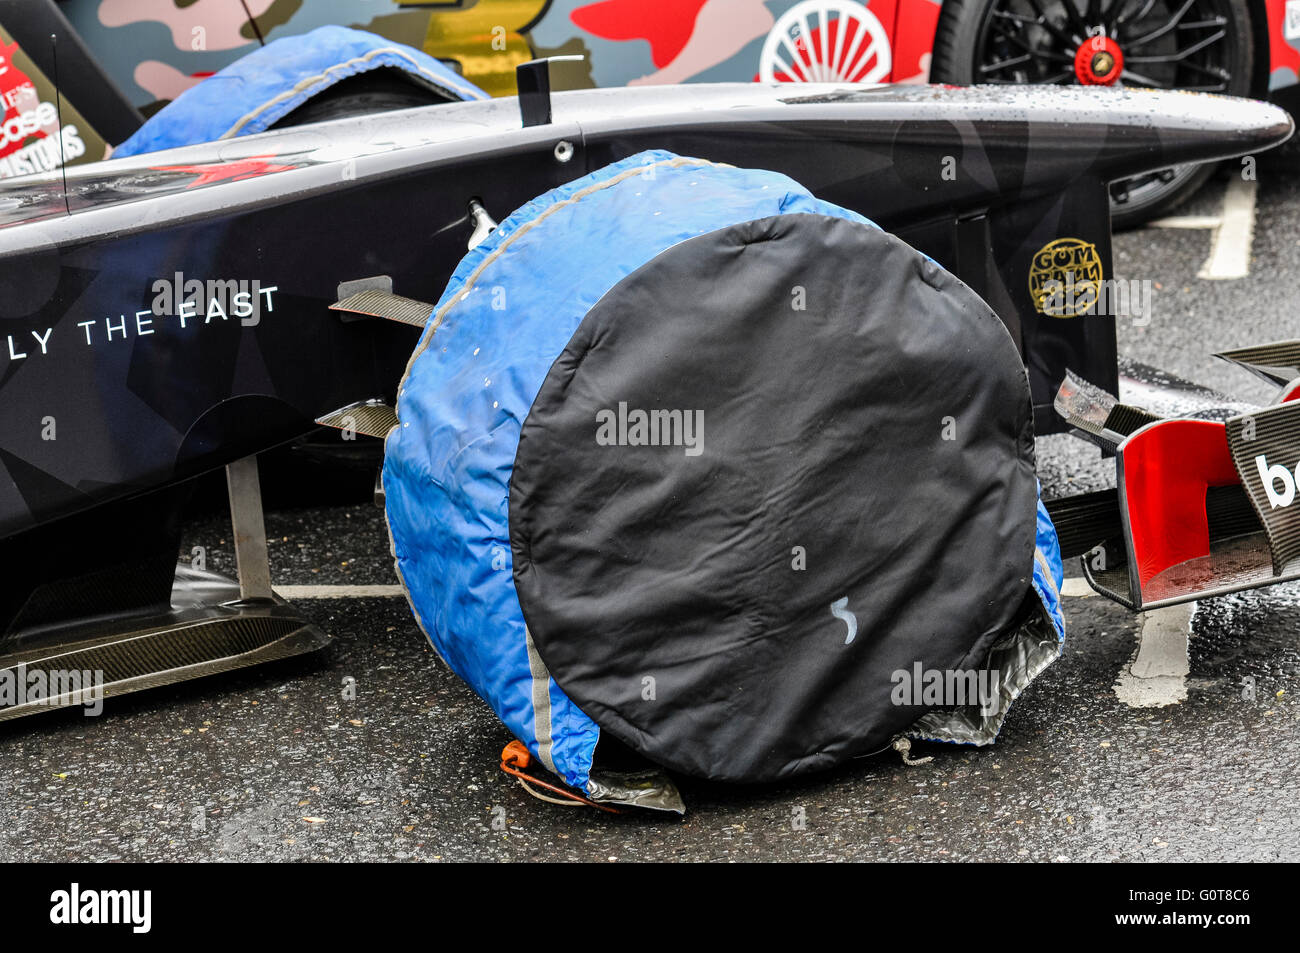 Tyre warmer jackets on the front wheels of a Formula 1 racing car. - Stock Image